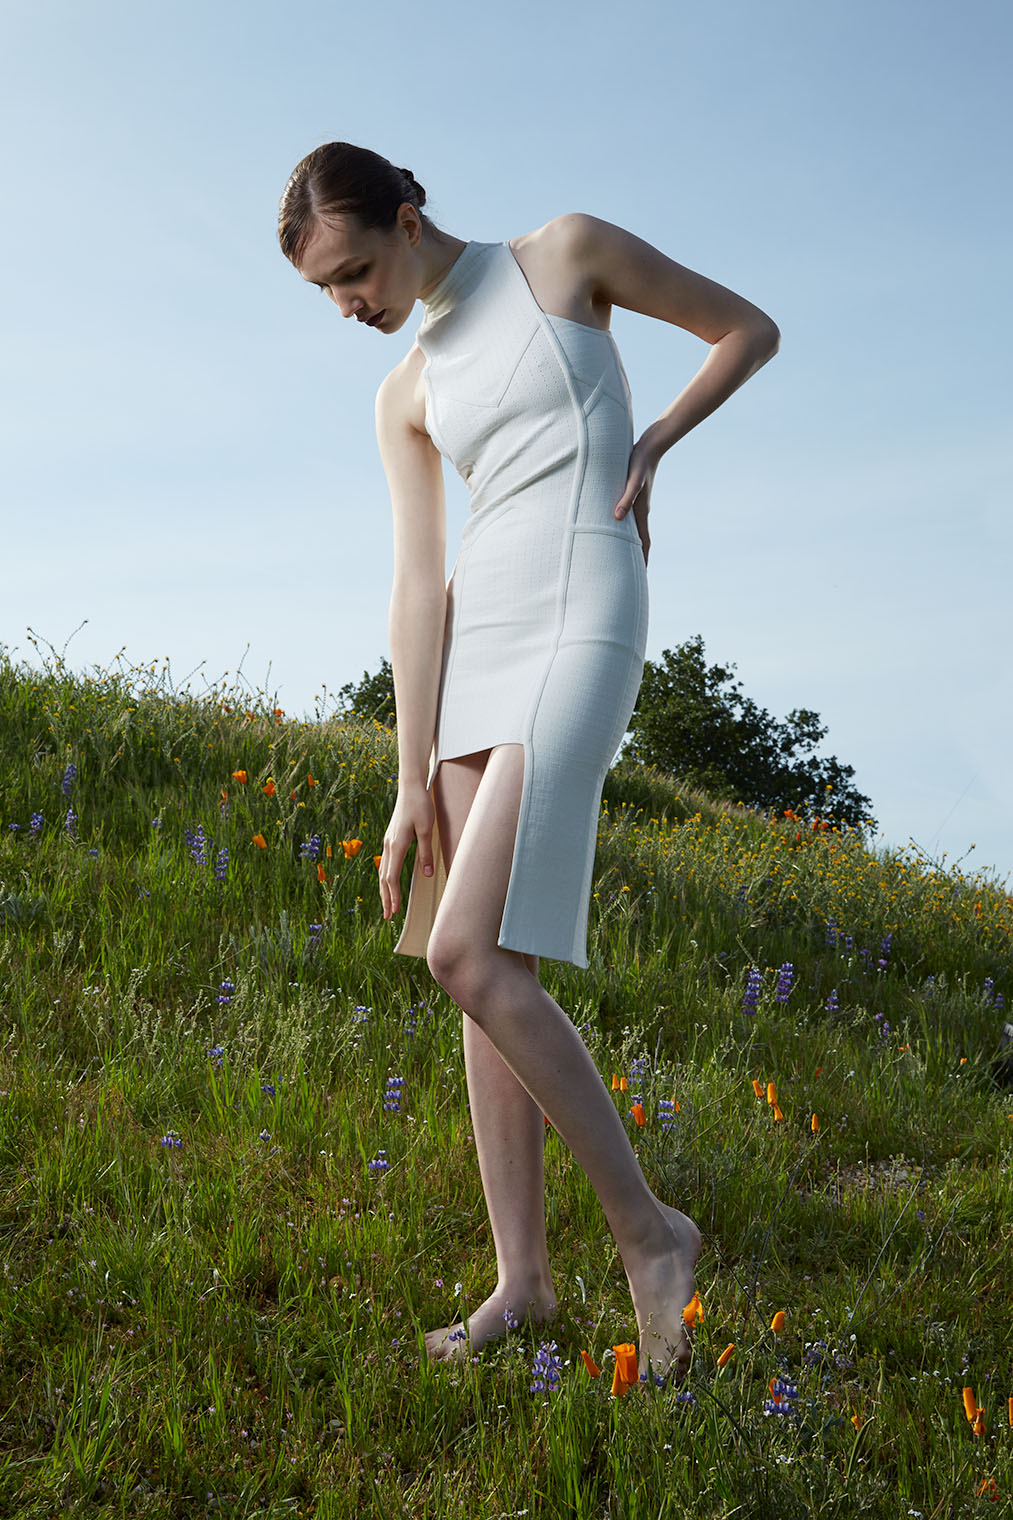 the ghost of a woman on a meadow, glowing white in elegant high fashion campaign